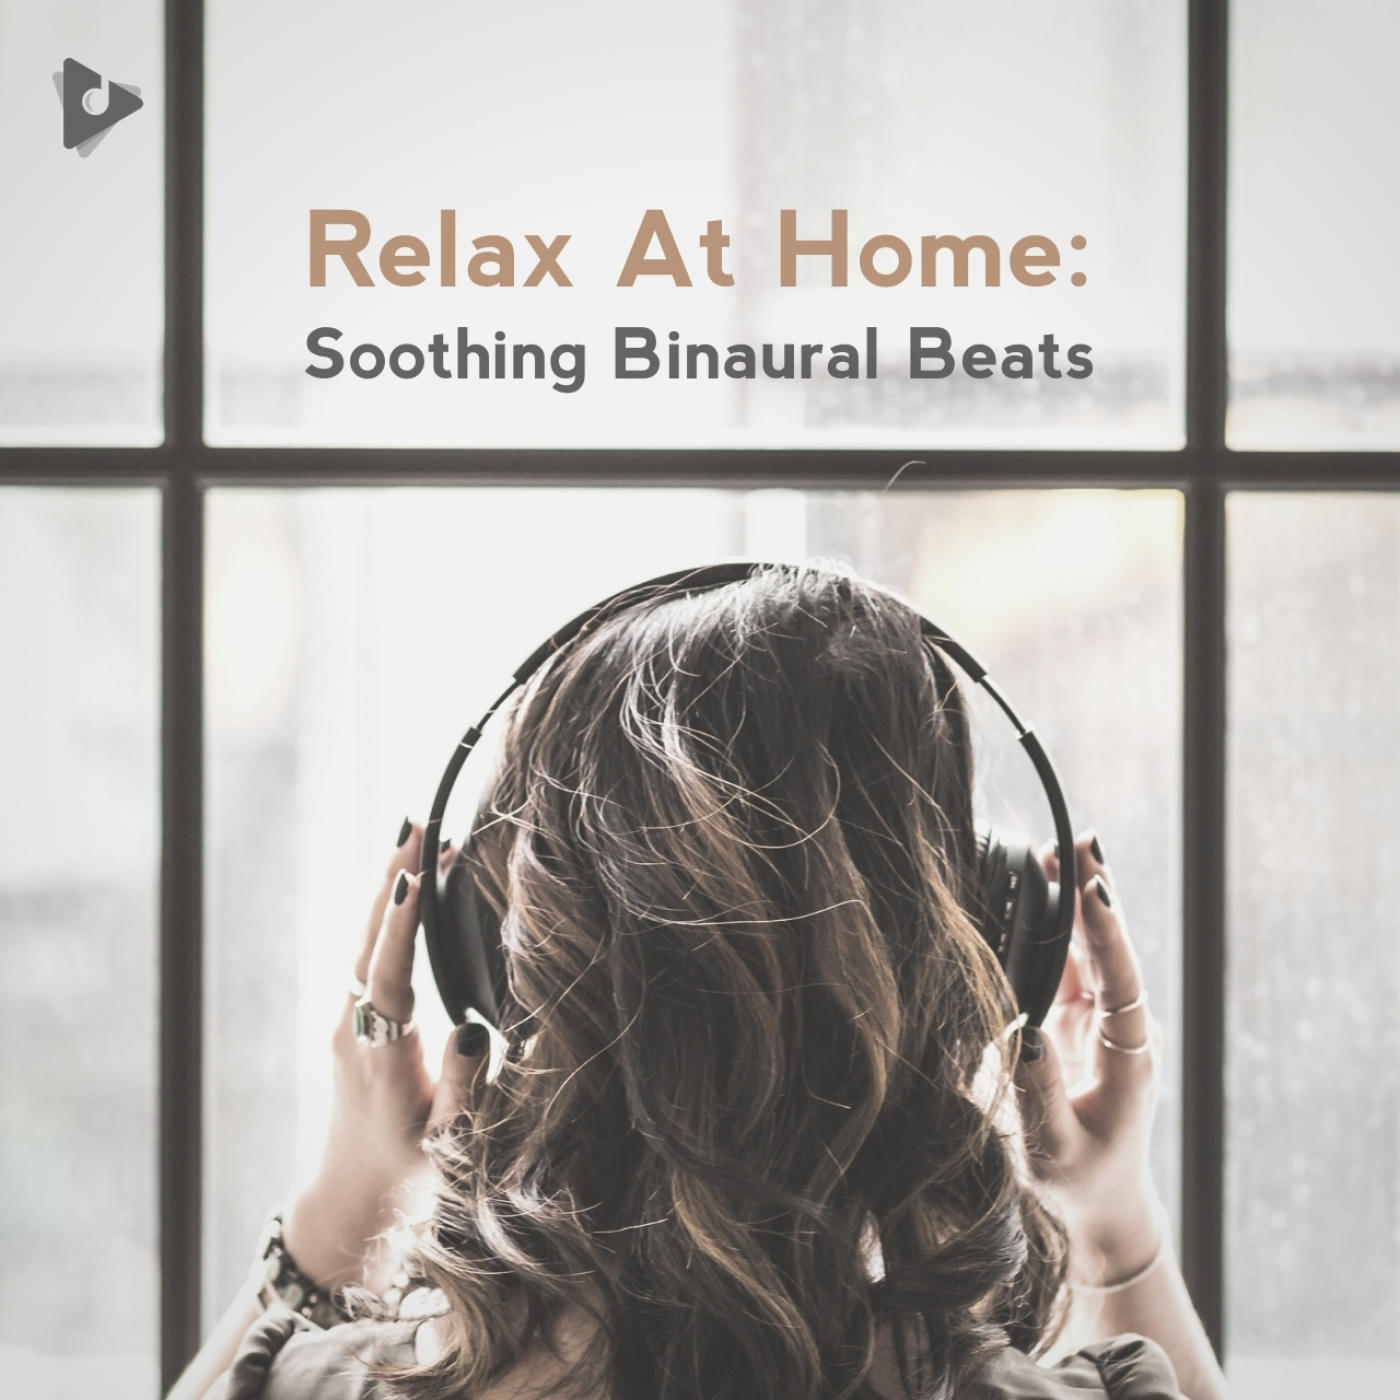 Stay-at-Home: Soothing Binaural Beats